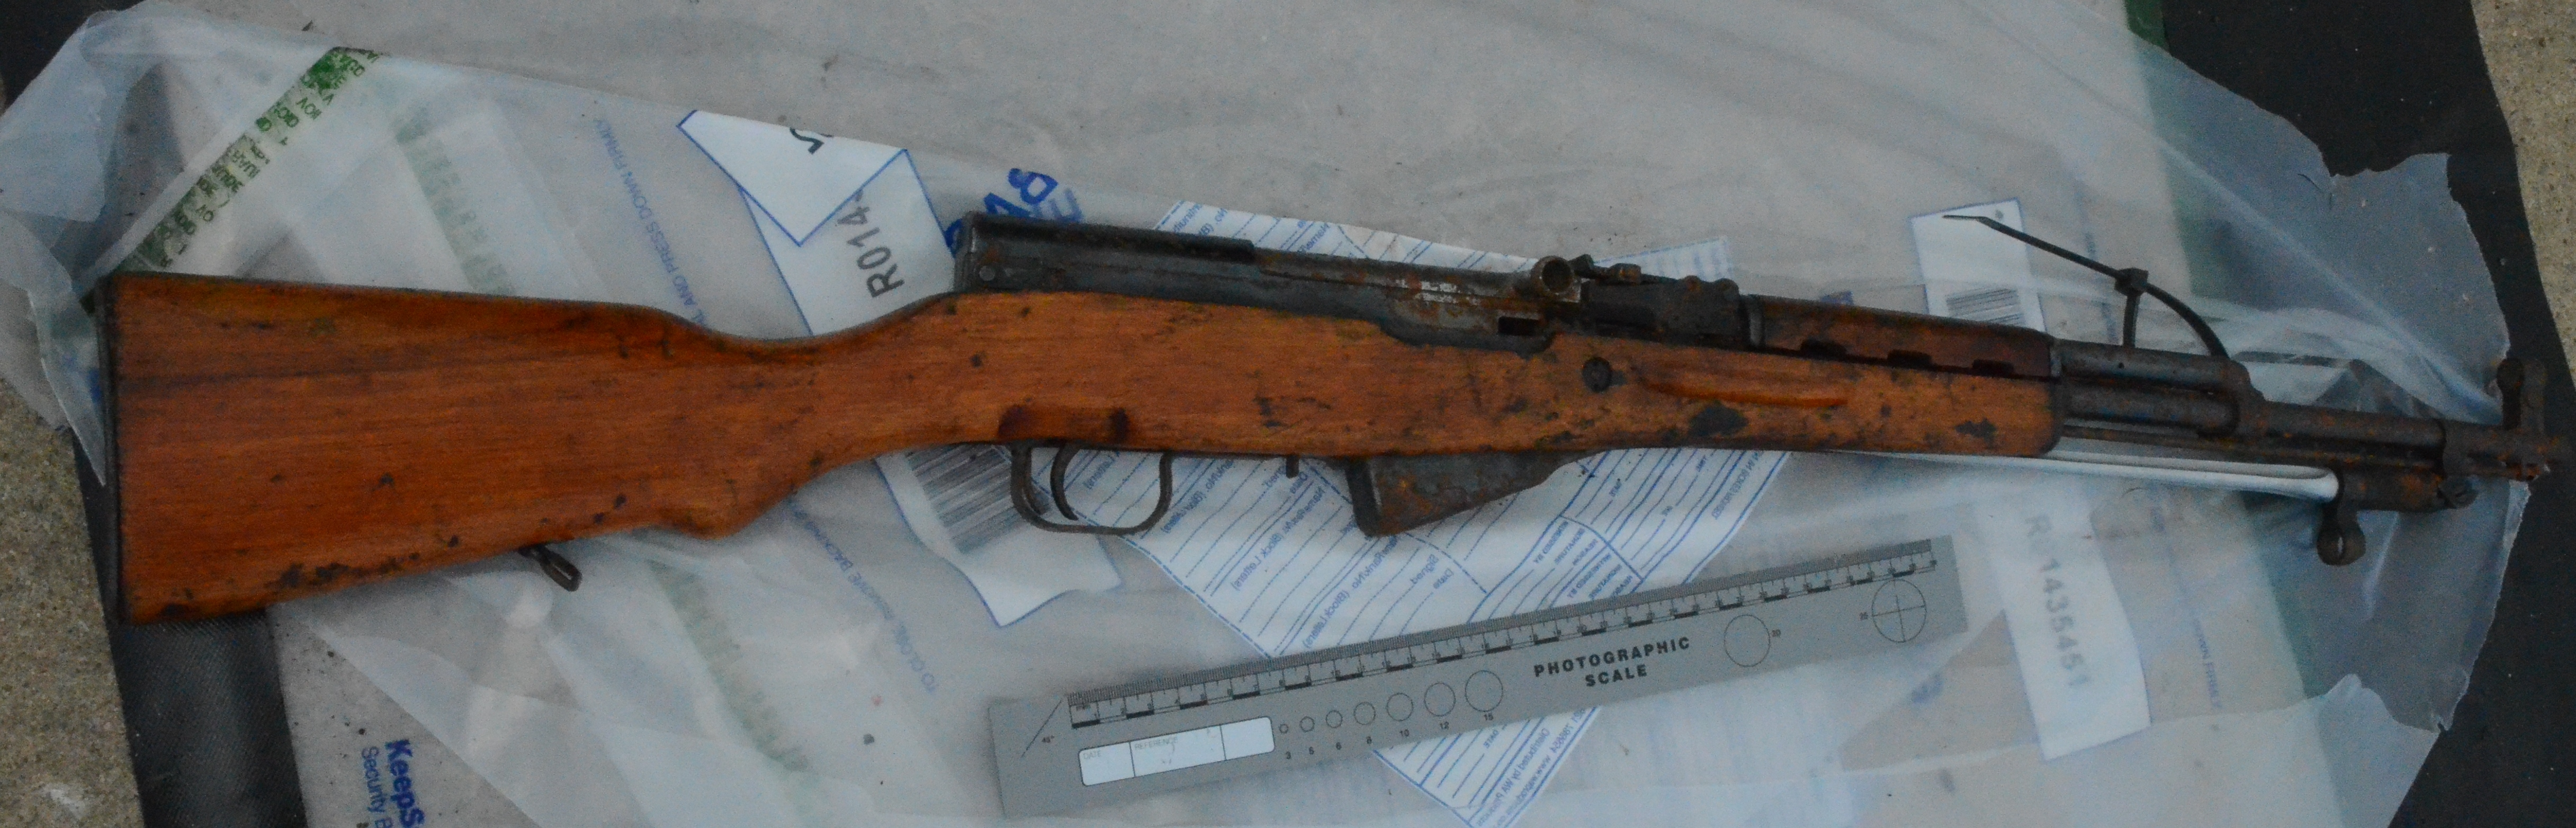 This rifle was one of three weapons seized by police (PSNI/PA)